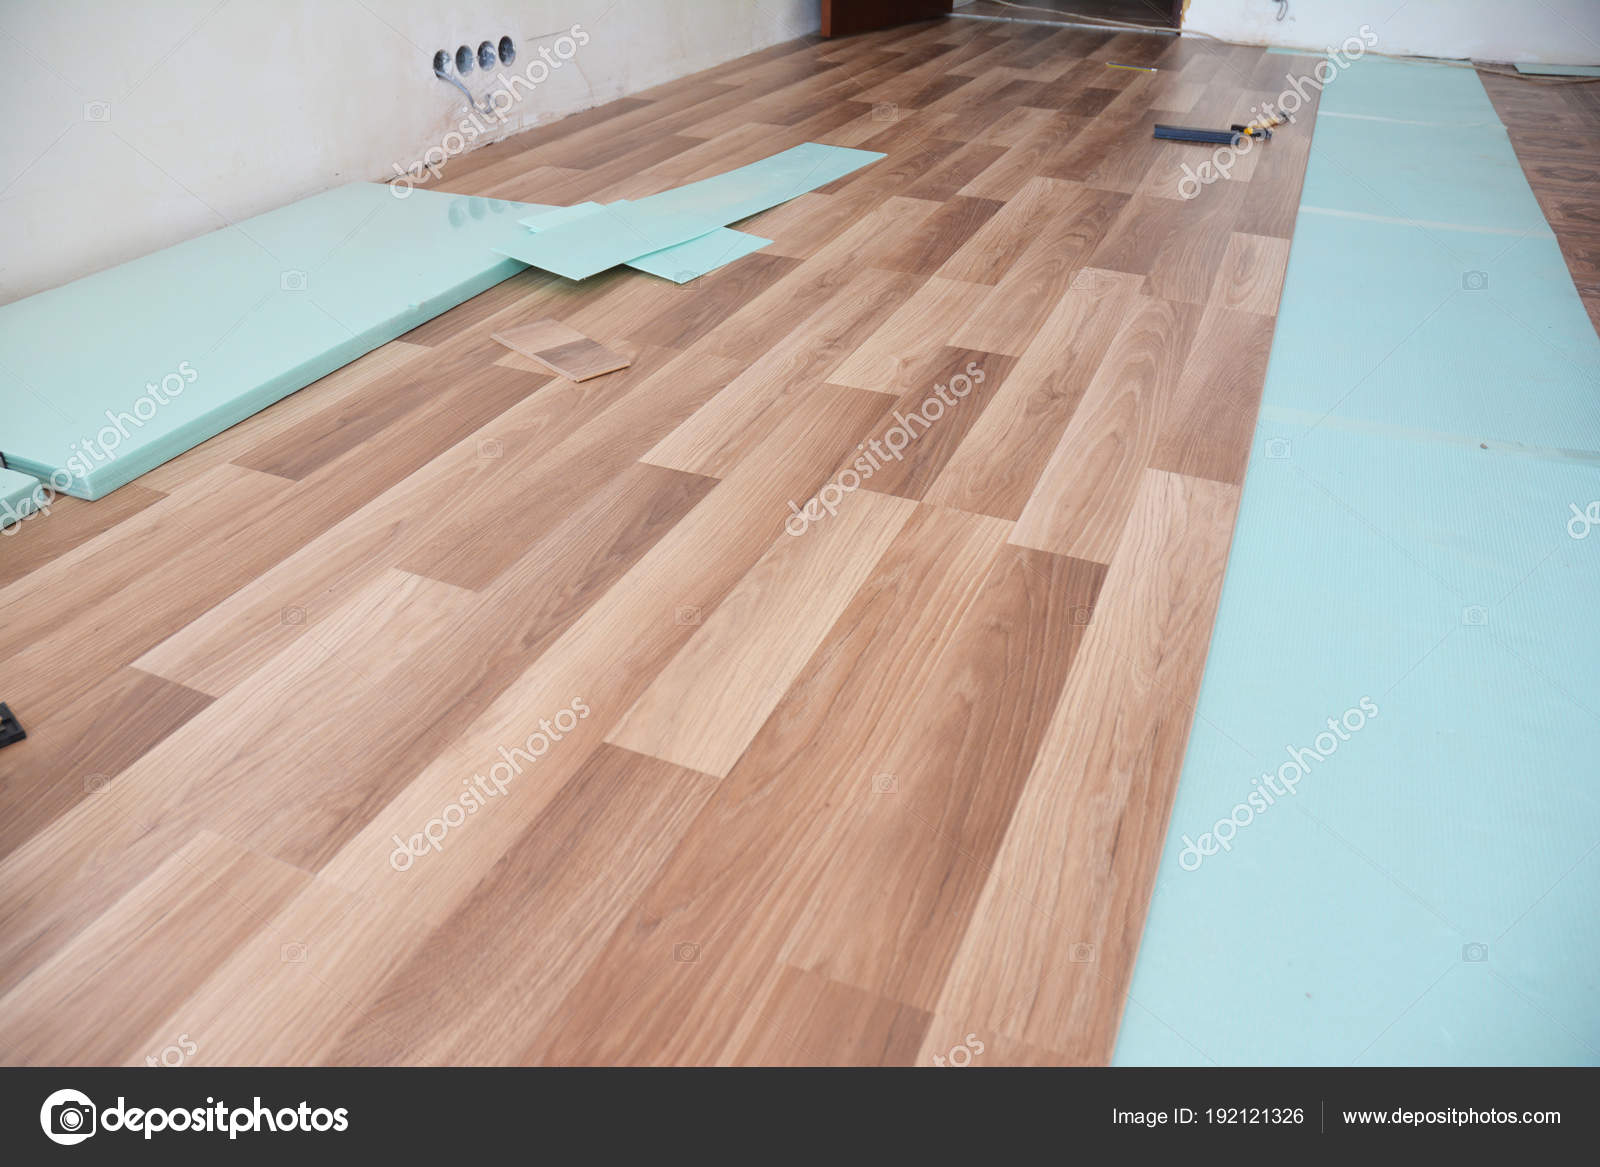 Installing Wooden Laminate Flooring With Insulation And Soundproofing Sheets Stock Photo